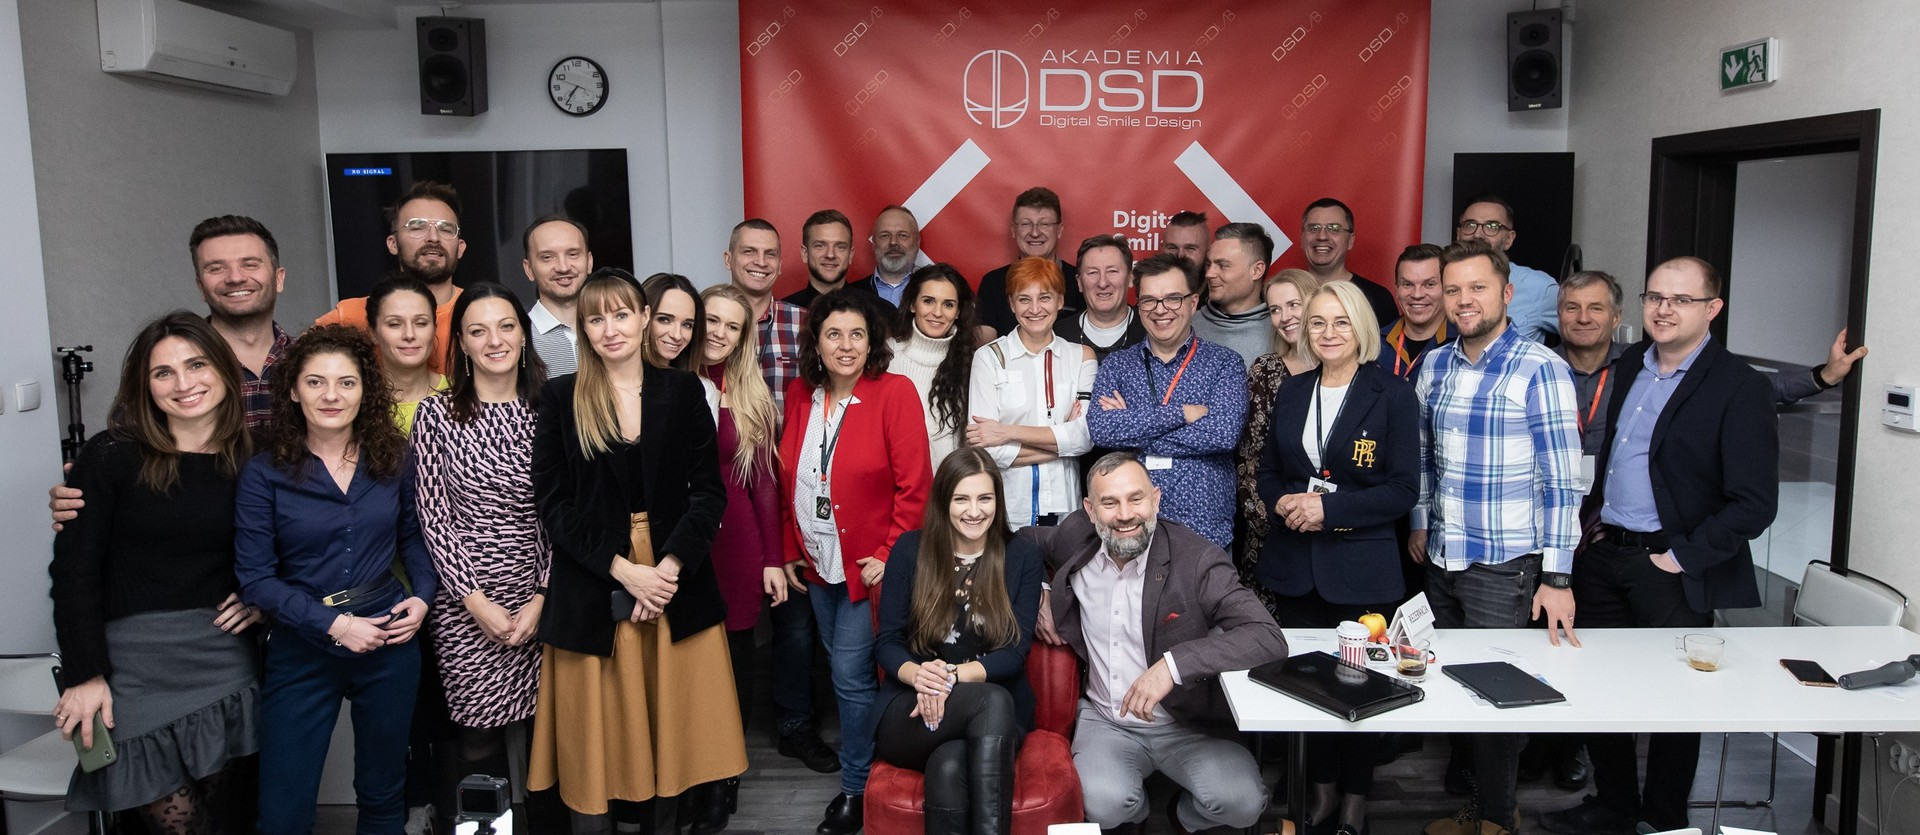 kurs dsd experience and restoration